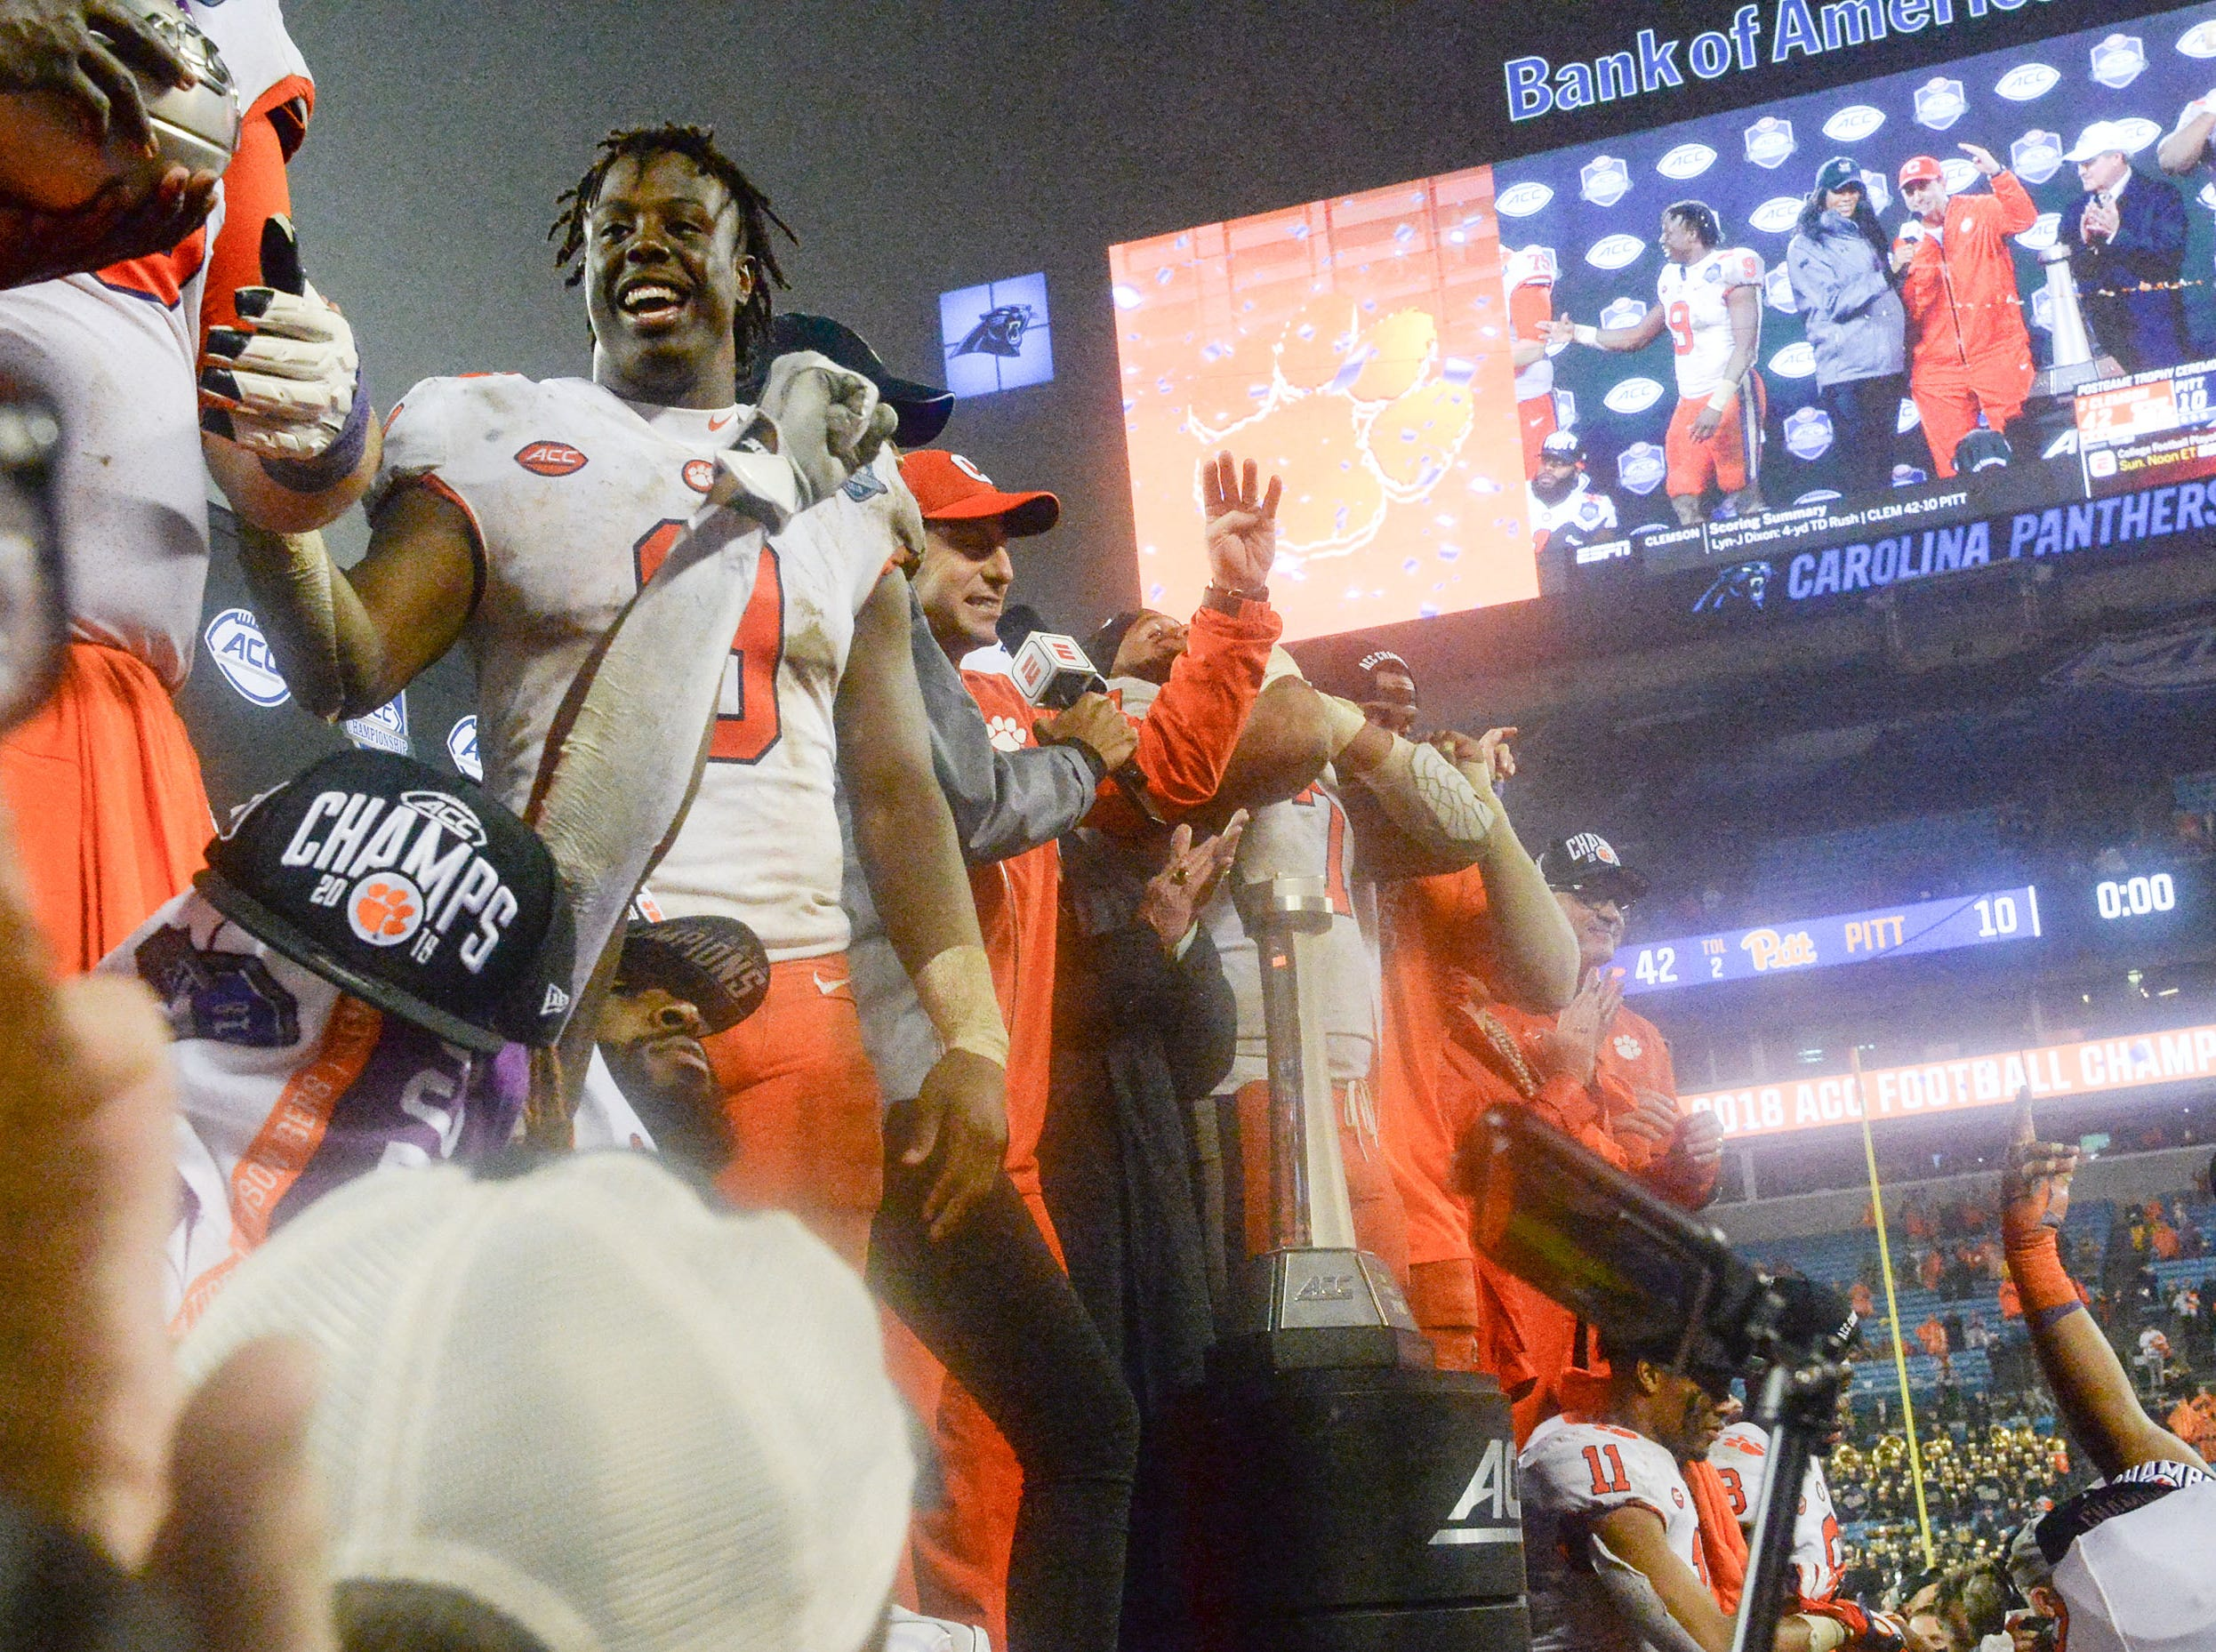 Clemson running back Travis Etienne, game MVP, and fans celebrate a 42-10 win over Pittsburgh after the game at the Dr. Pepper ACC football championship at Bank of America Stadium in Charlotte, N.C. on Saturday, December 1, 2018.